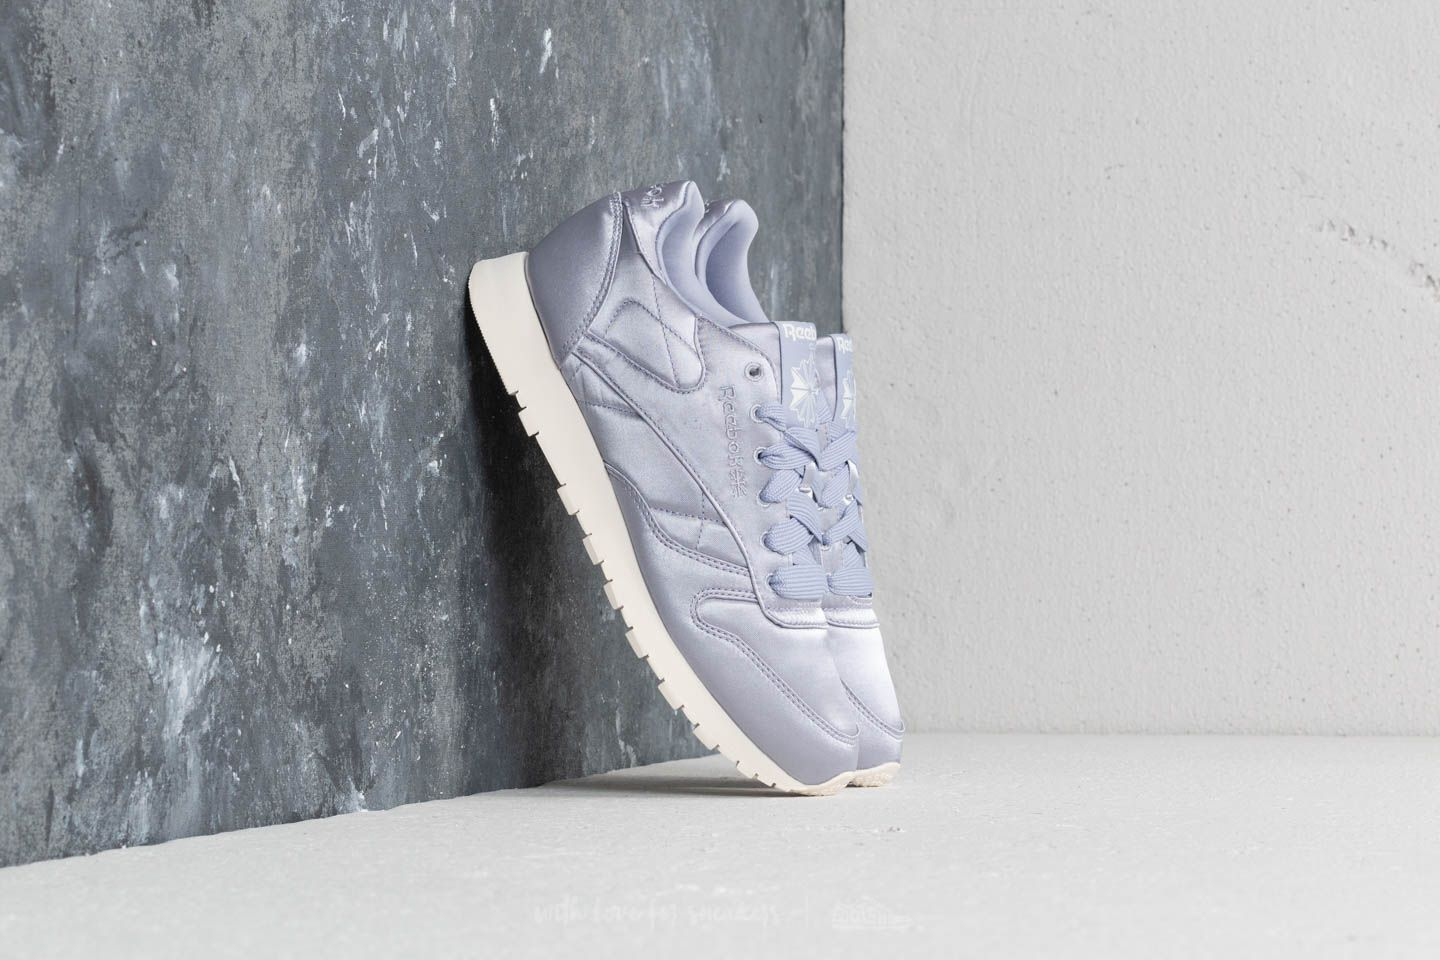 524163db946a5b Reebok CL Leather Satin Purple Fog  Classic White at a great price £44 buy